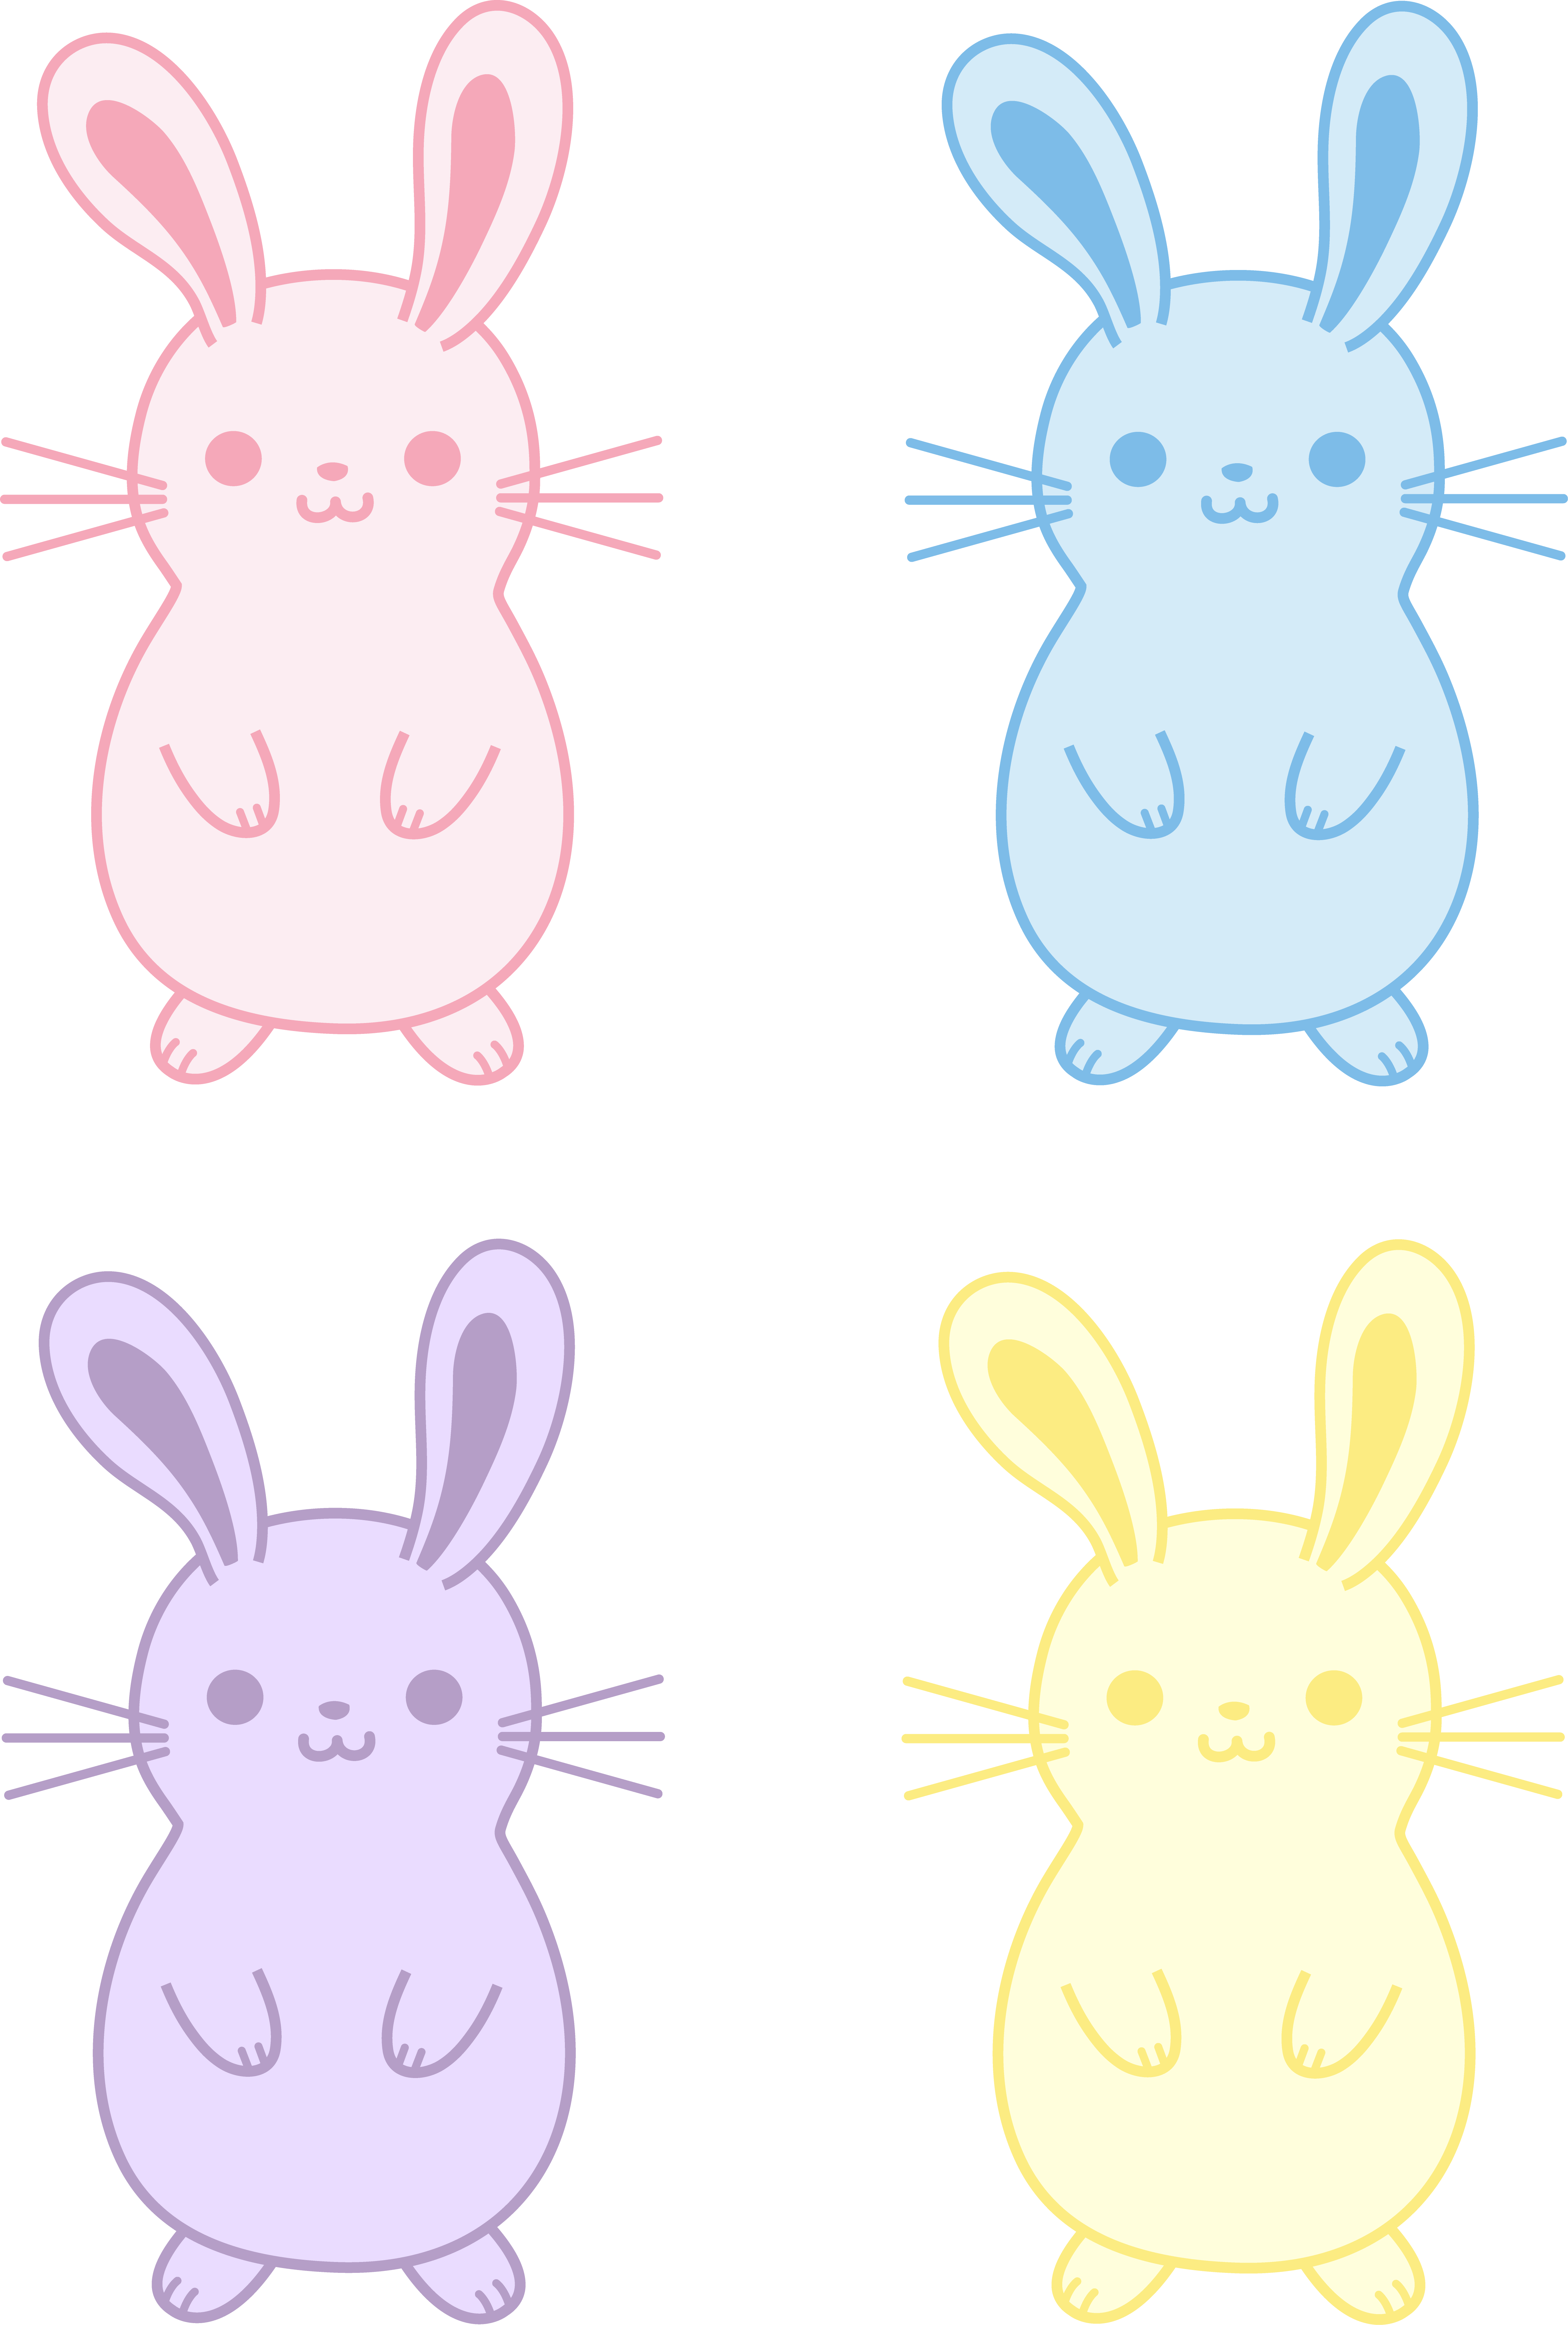 Drawing bunnies baby bunny. Set of four cute